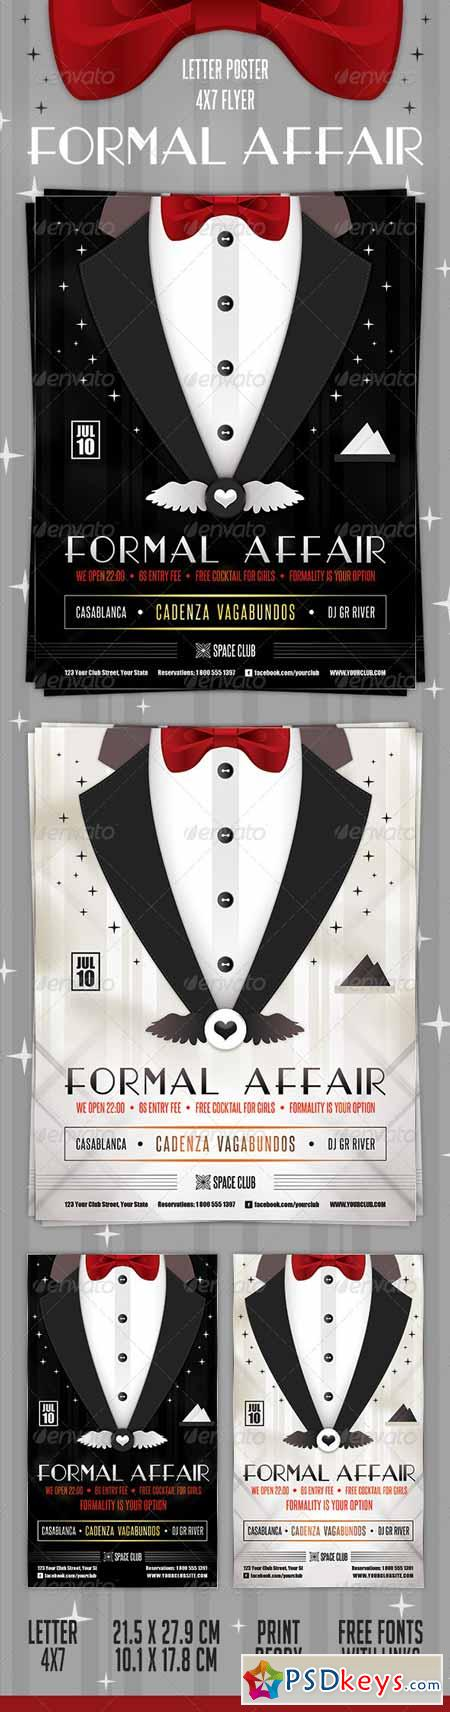 Formal Affair Poster and Flyer 2598528